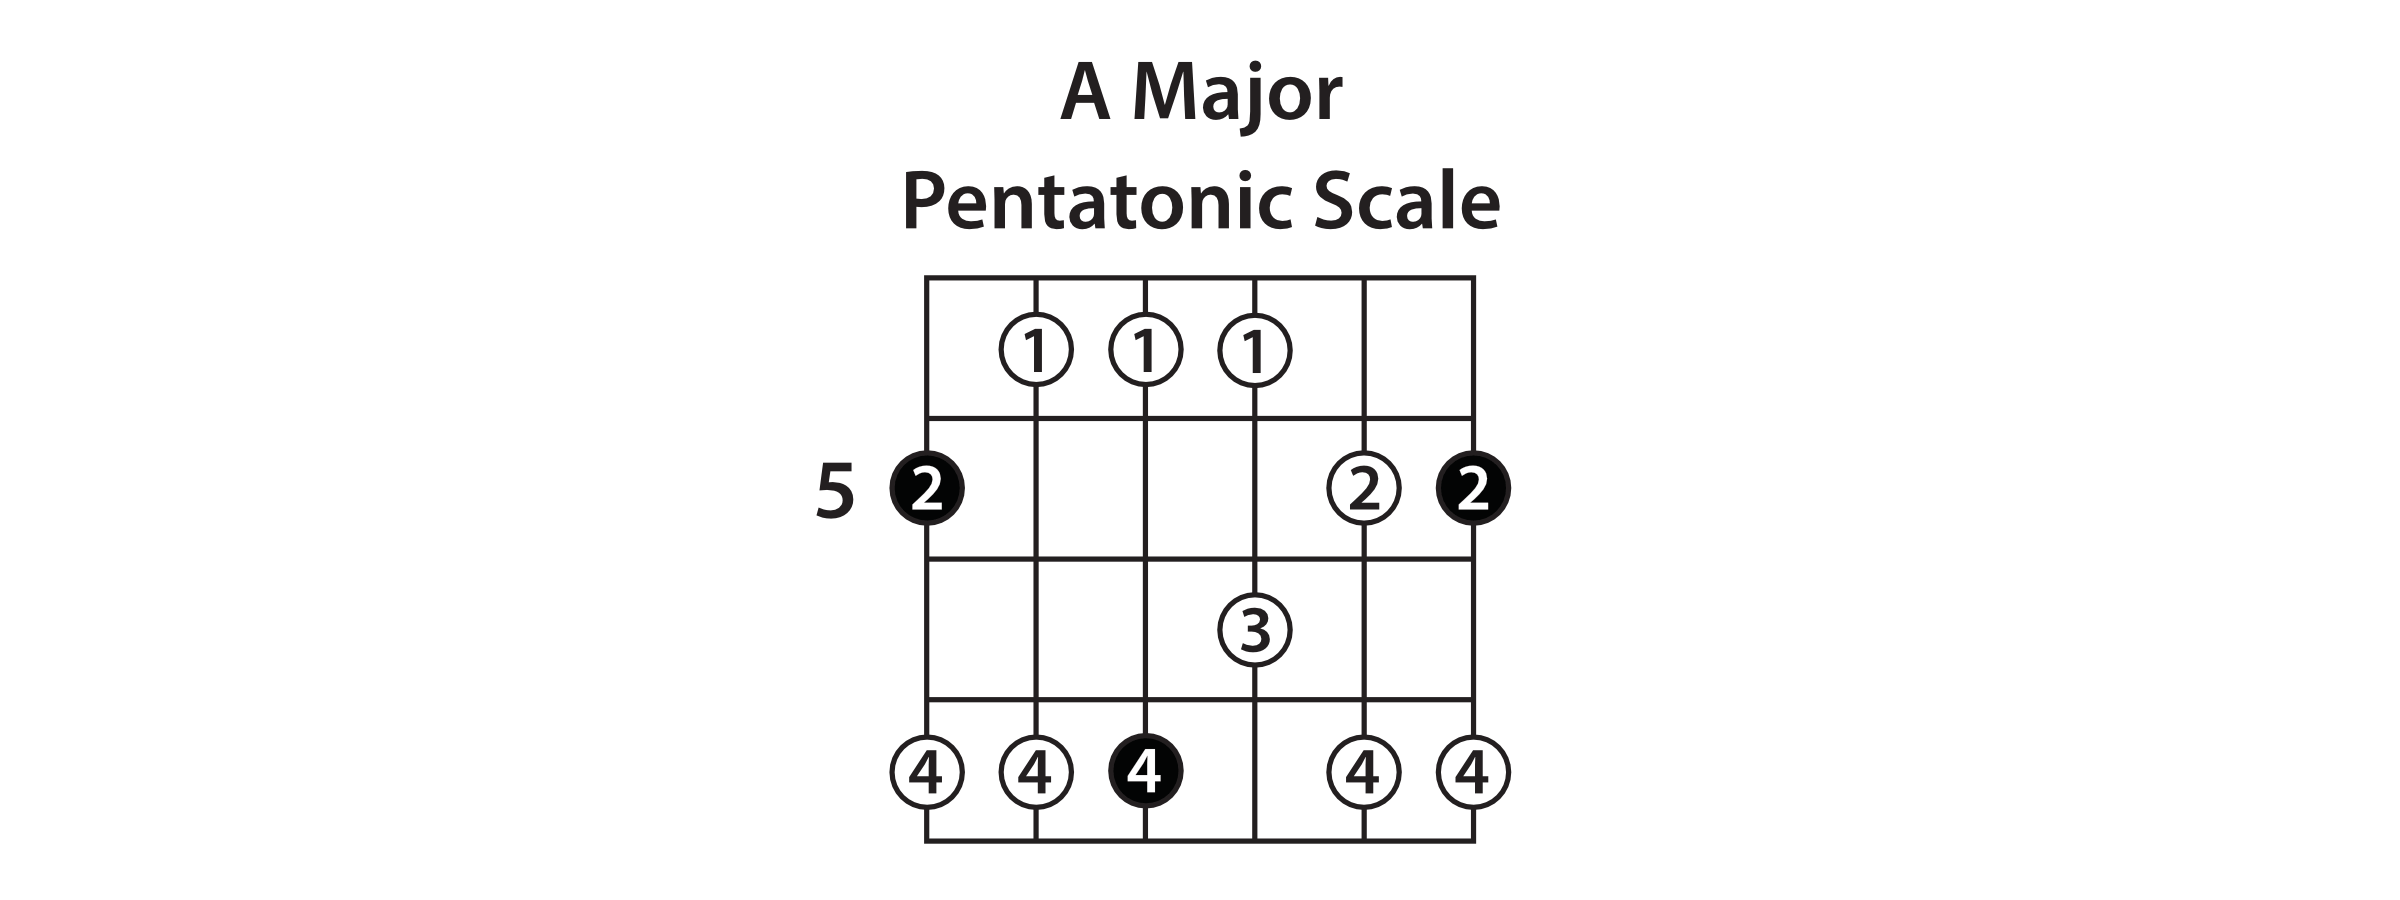 a major pentatonic scale notes pictures to pin on